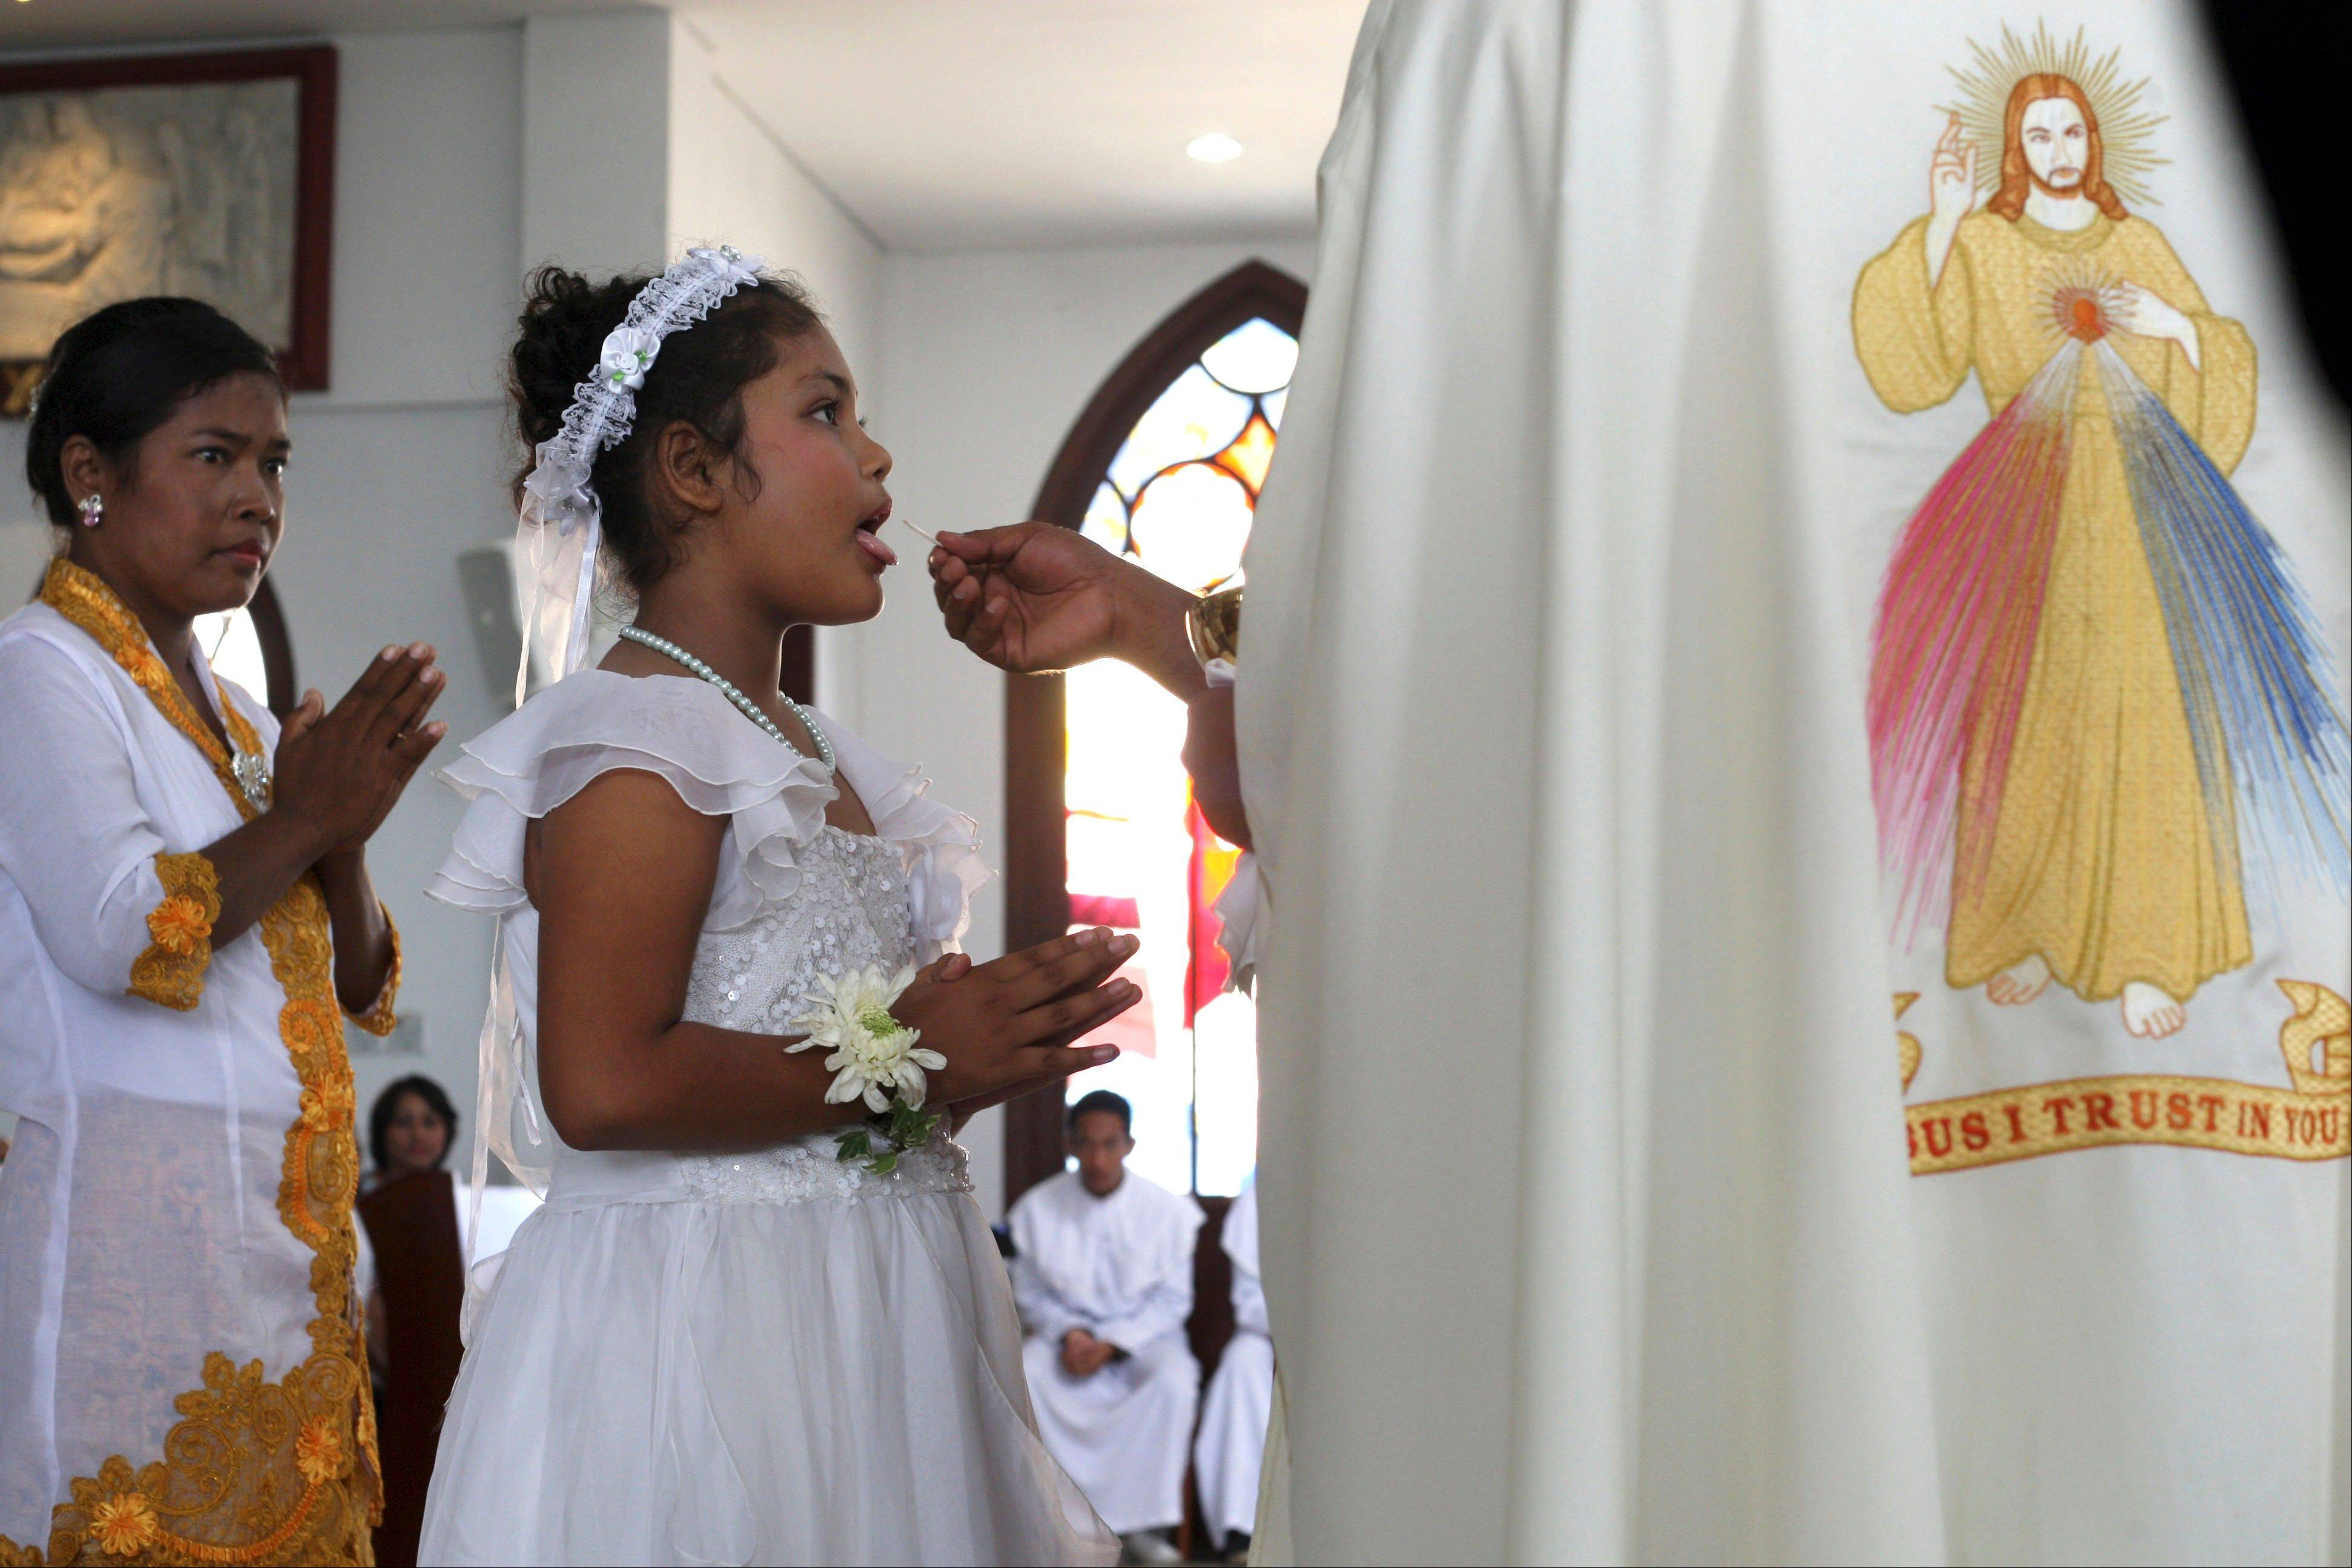 A girl receives communion during a mass for receiving the first communion at Catholic church in Nusa Dua, Bali, Indonesia. Indonesia's president has accepted a statesmanship award ofrom a U.S. interfaith foundation that says it hopes to encourage him to promote freedom of worship and tolerance in the world's most populous Muslim-majority nation.